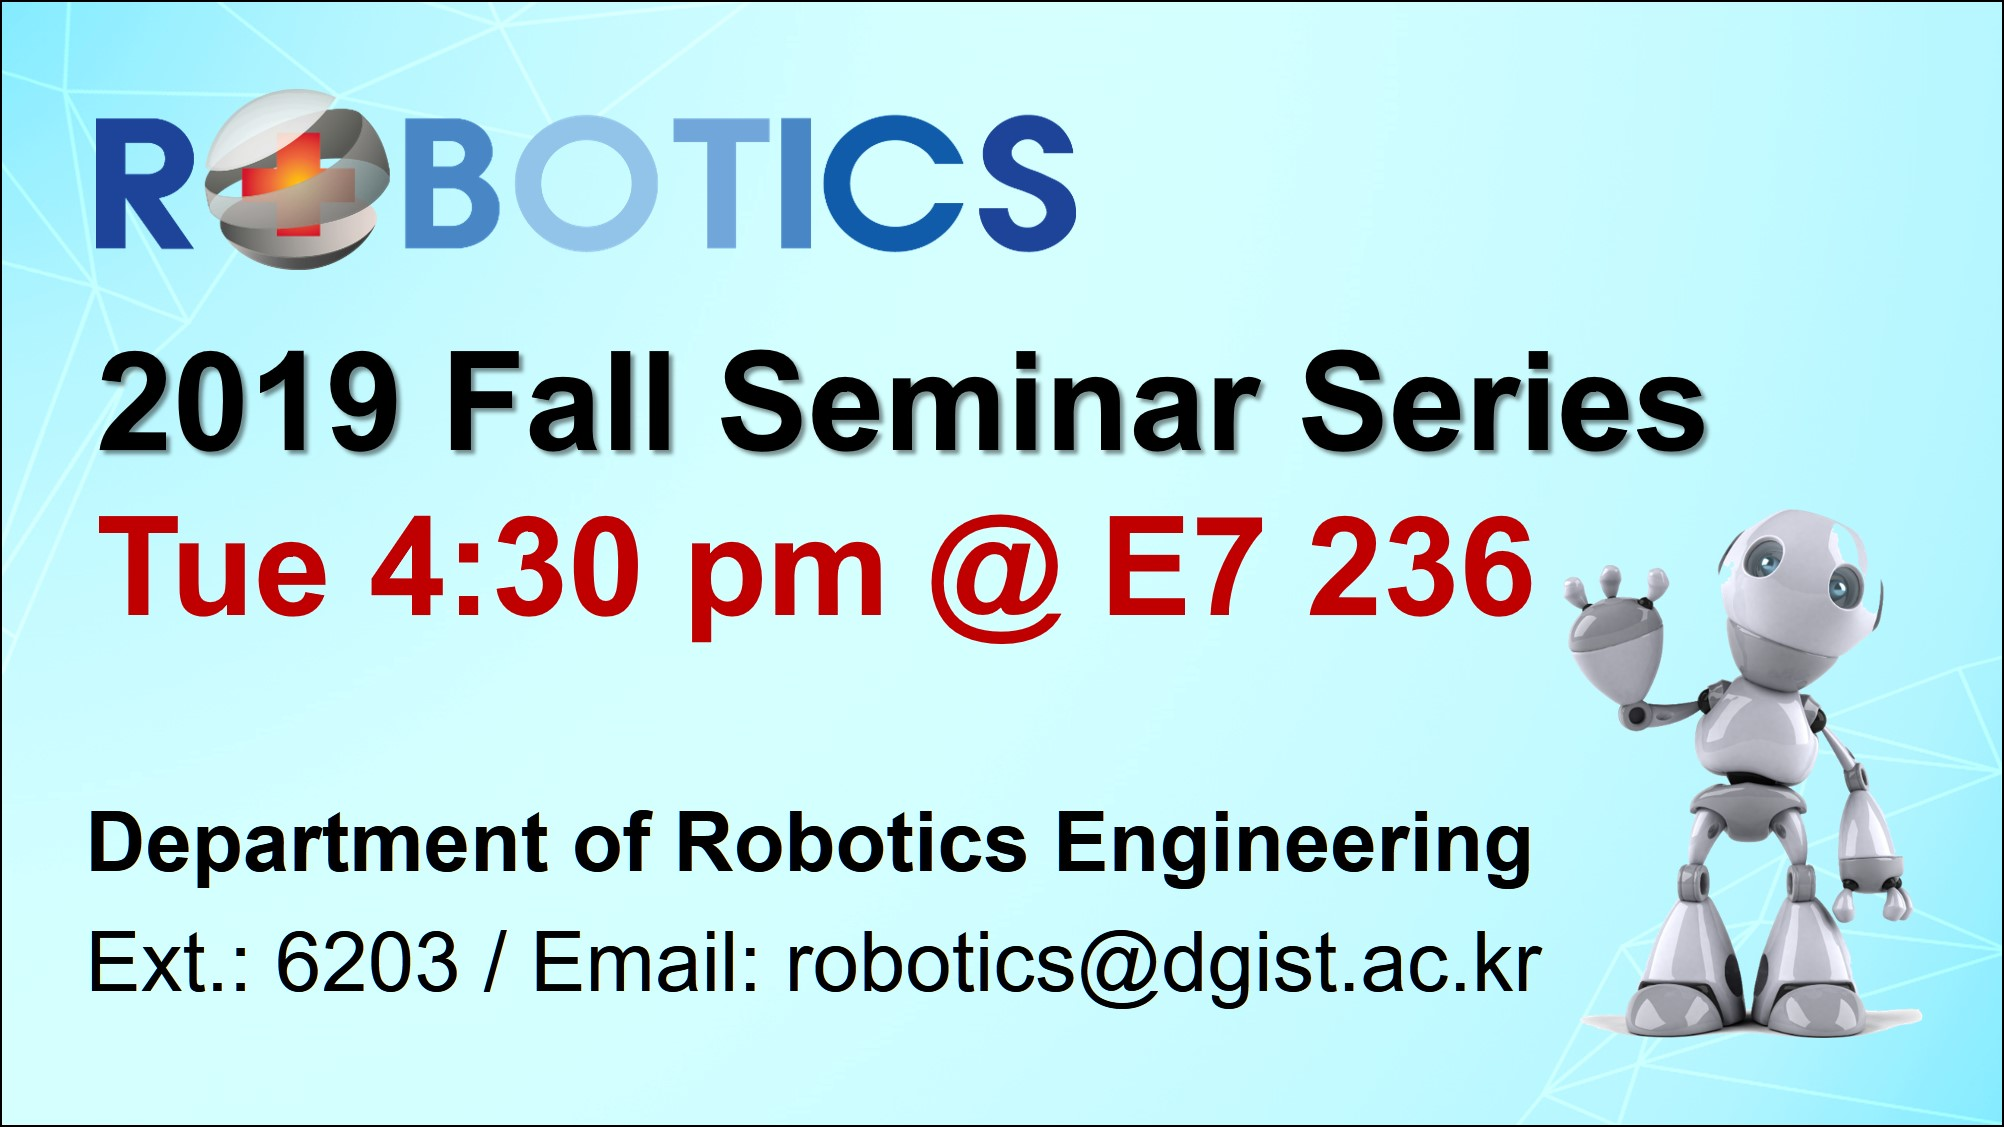 2019 Fall Seminar Seires of ROBOTICS 이미지